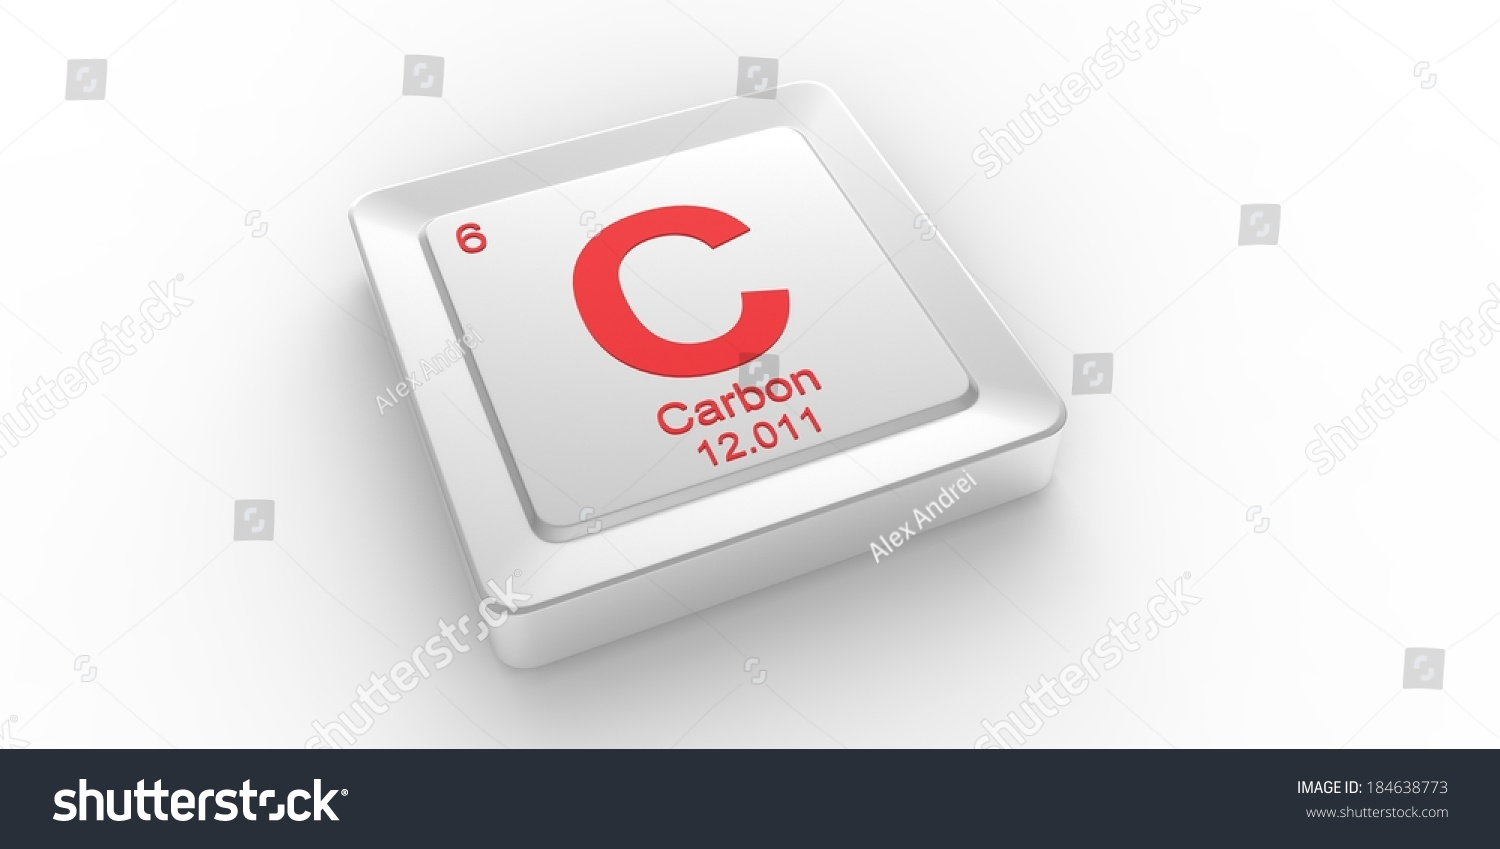 Periodic table symbol c gallery periodic table and sample with c symbol 6 material carbon chemical stock illustration 184638773 c symbol 6 material for carbon chemical buycottarizona